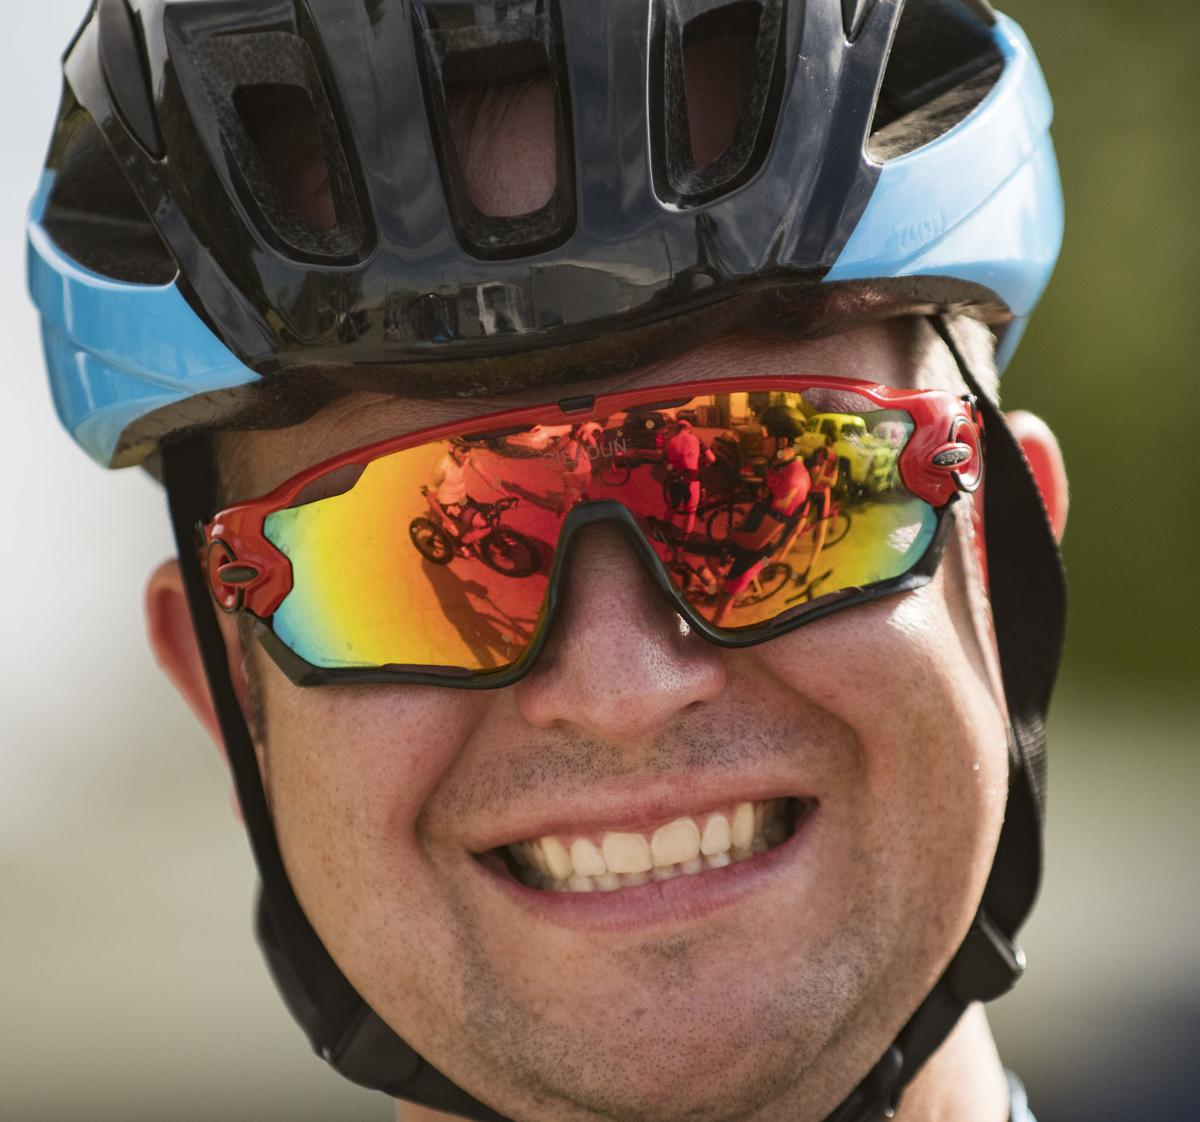 Criterium's 2nd year brings better and faster race to